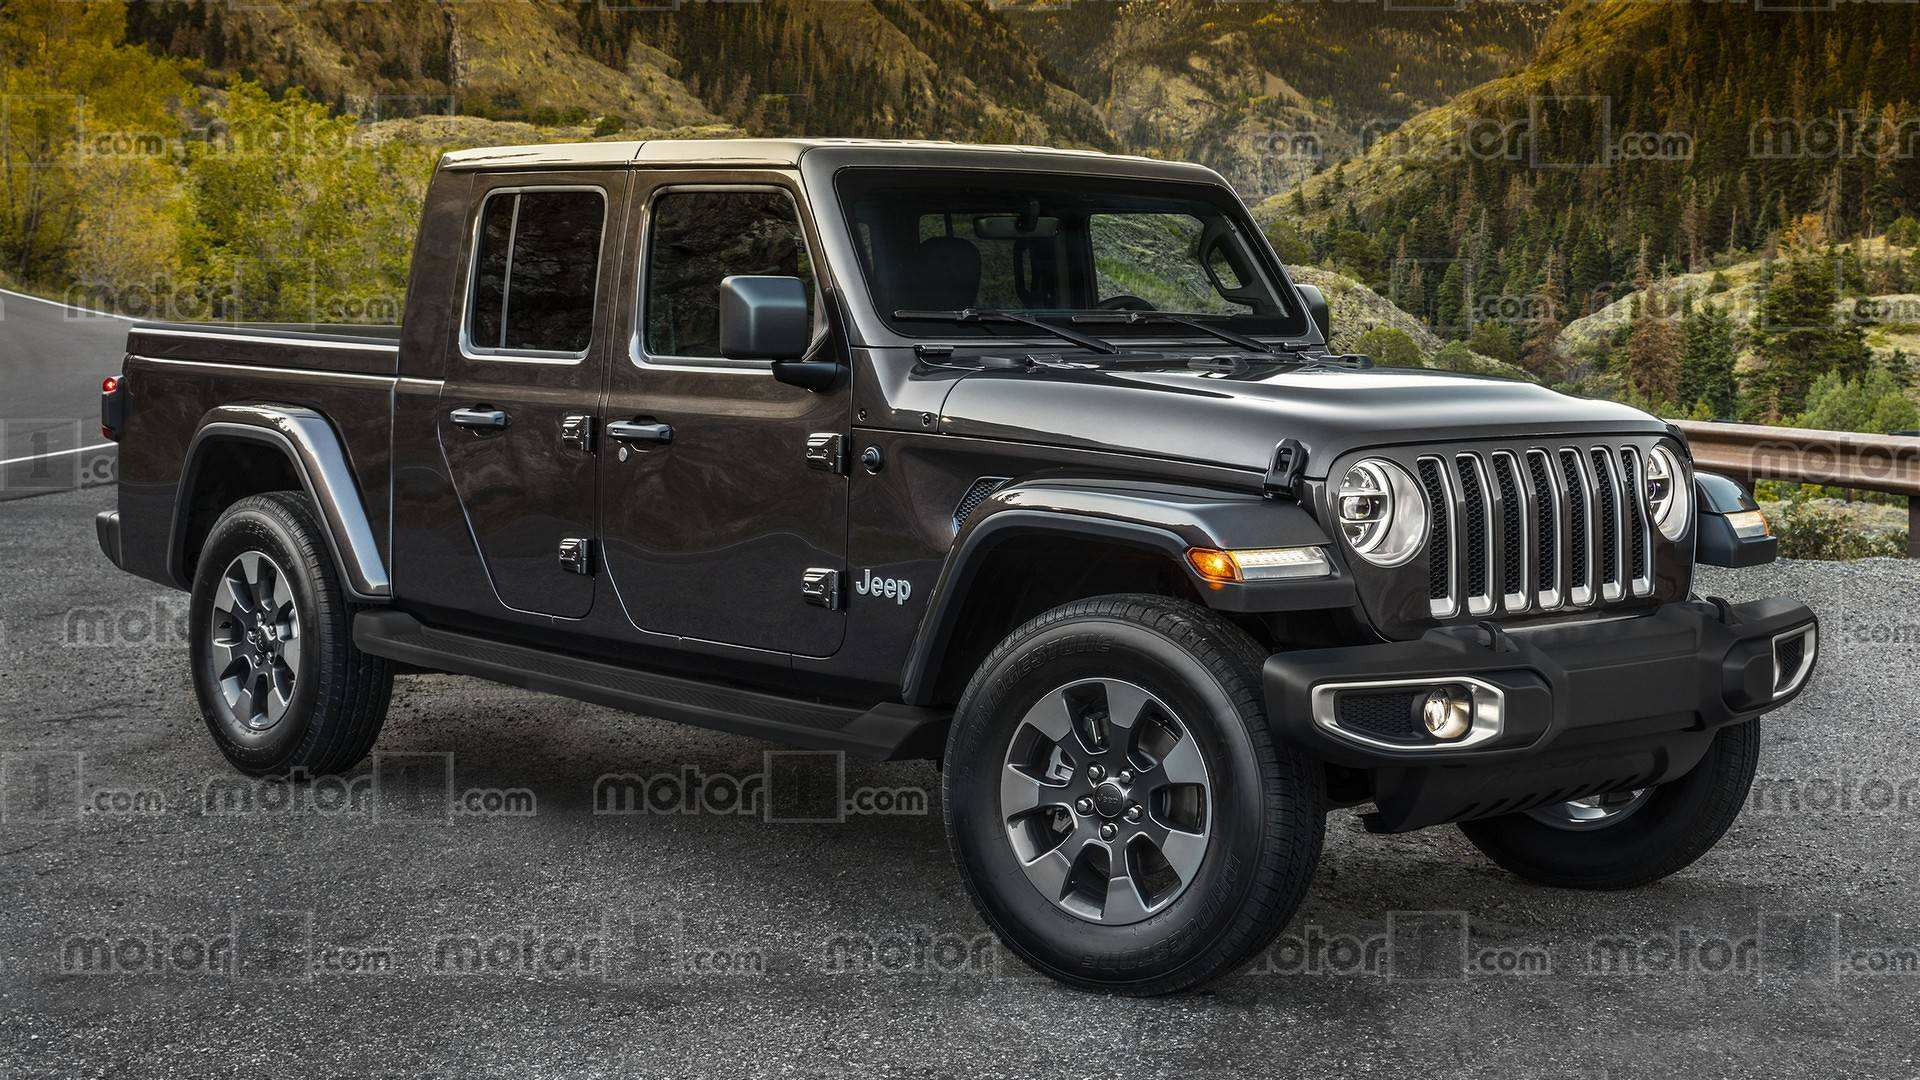 96 All New 2019 Jeep Wrangler Images Interior by 2019 Jeep Wrangler Images